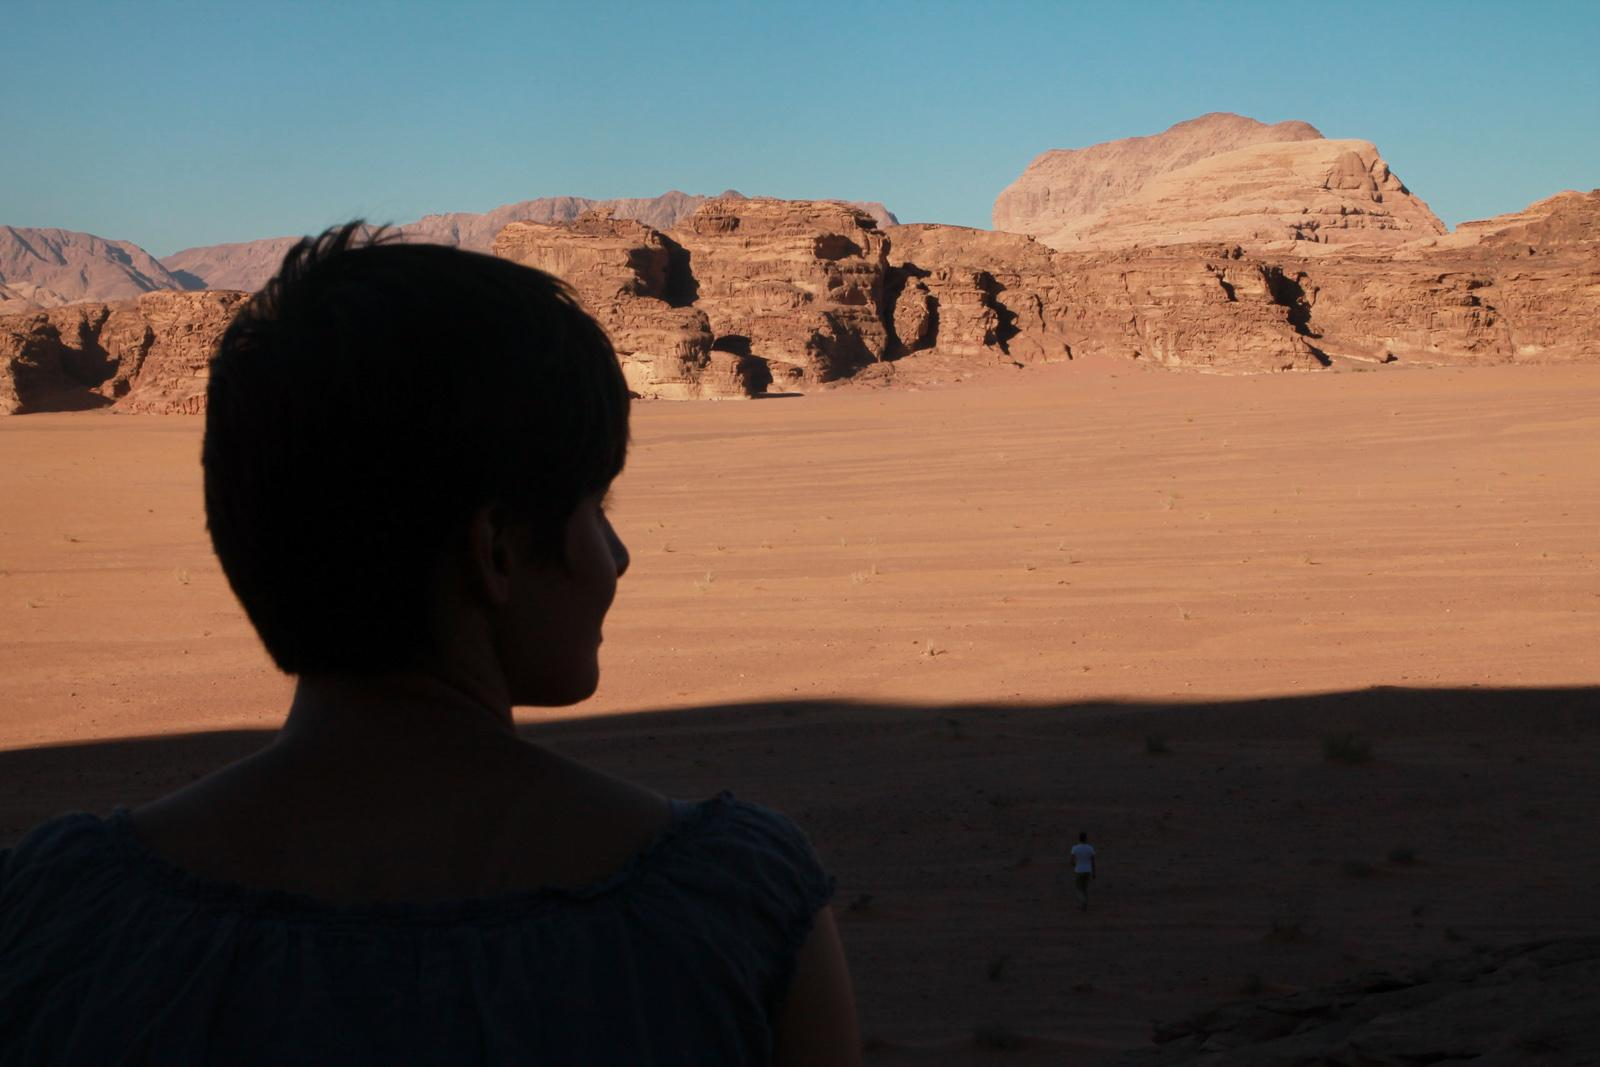 Luise in the desert of Wadi Rum